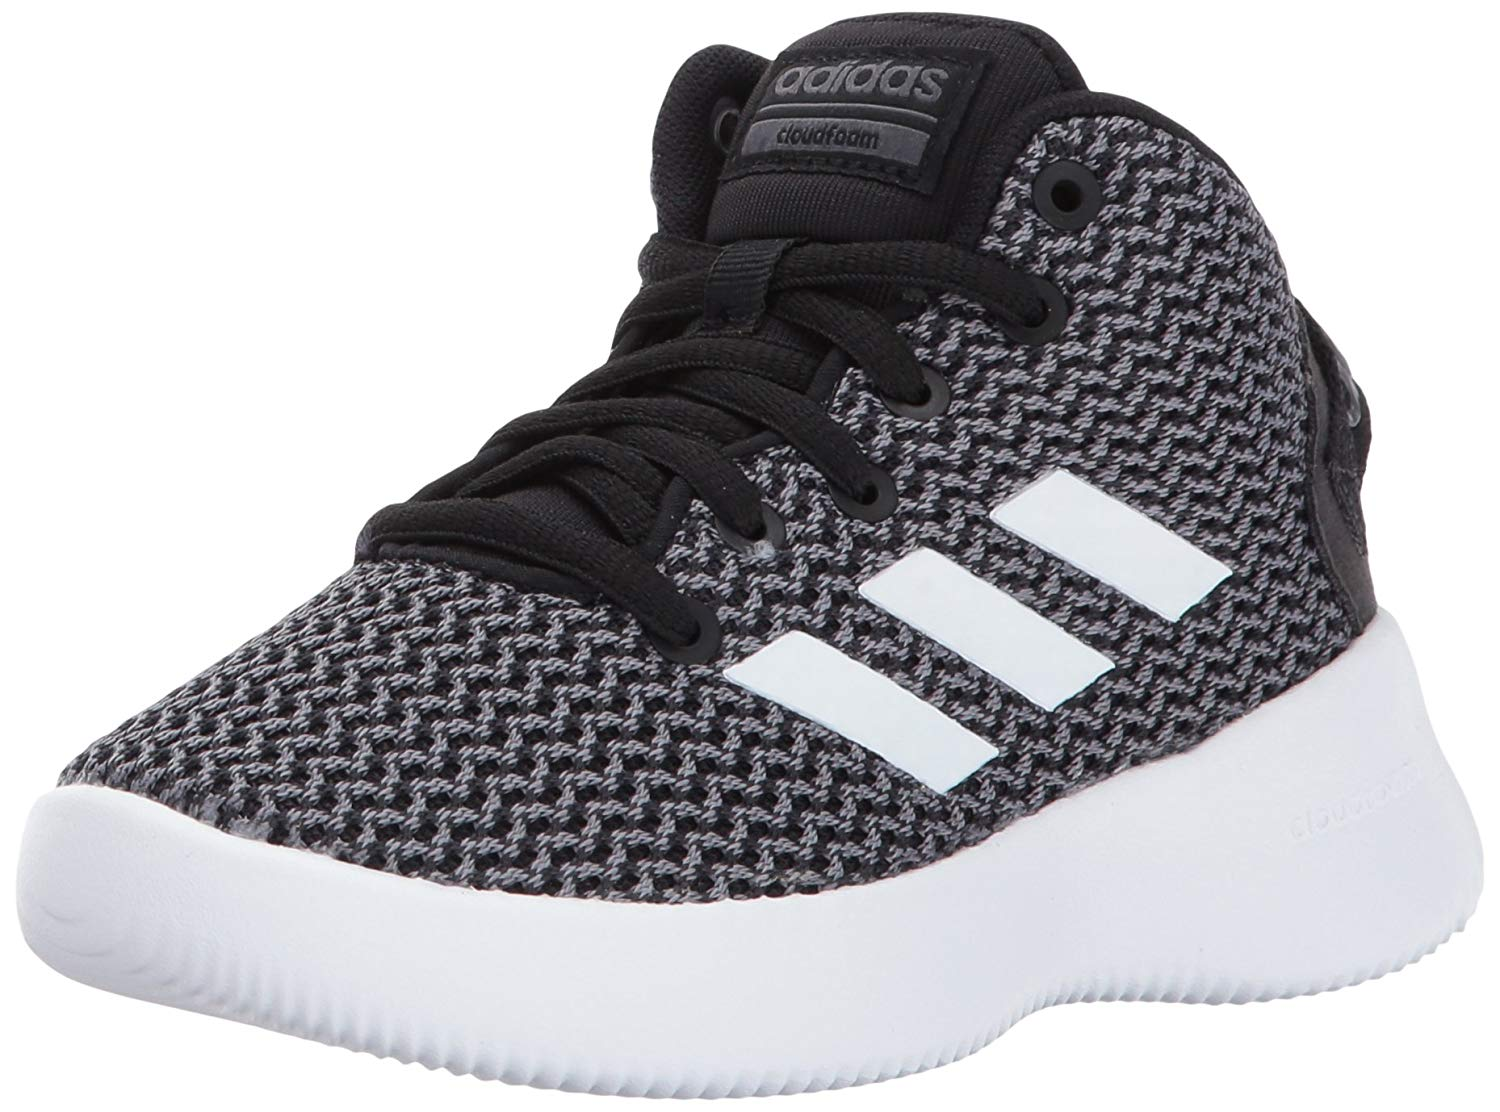 654a74145ae Get Quotations · adidas Neo Boys  CF Refresh Mid K Sneaker